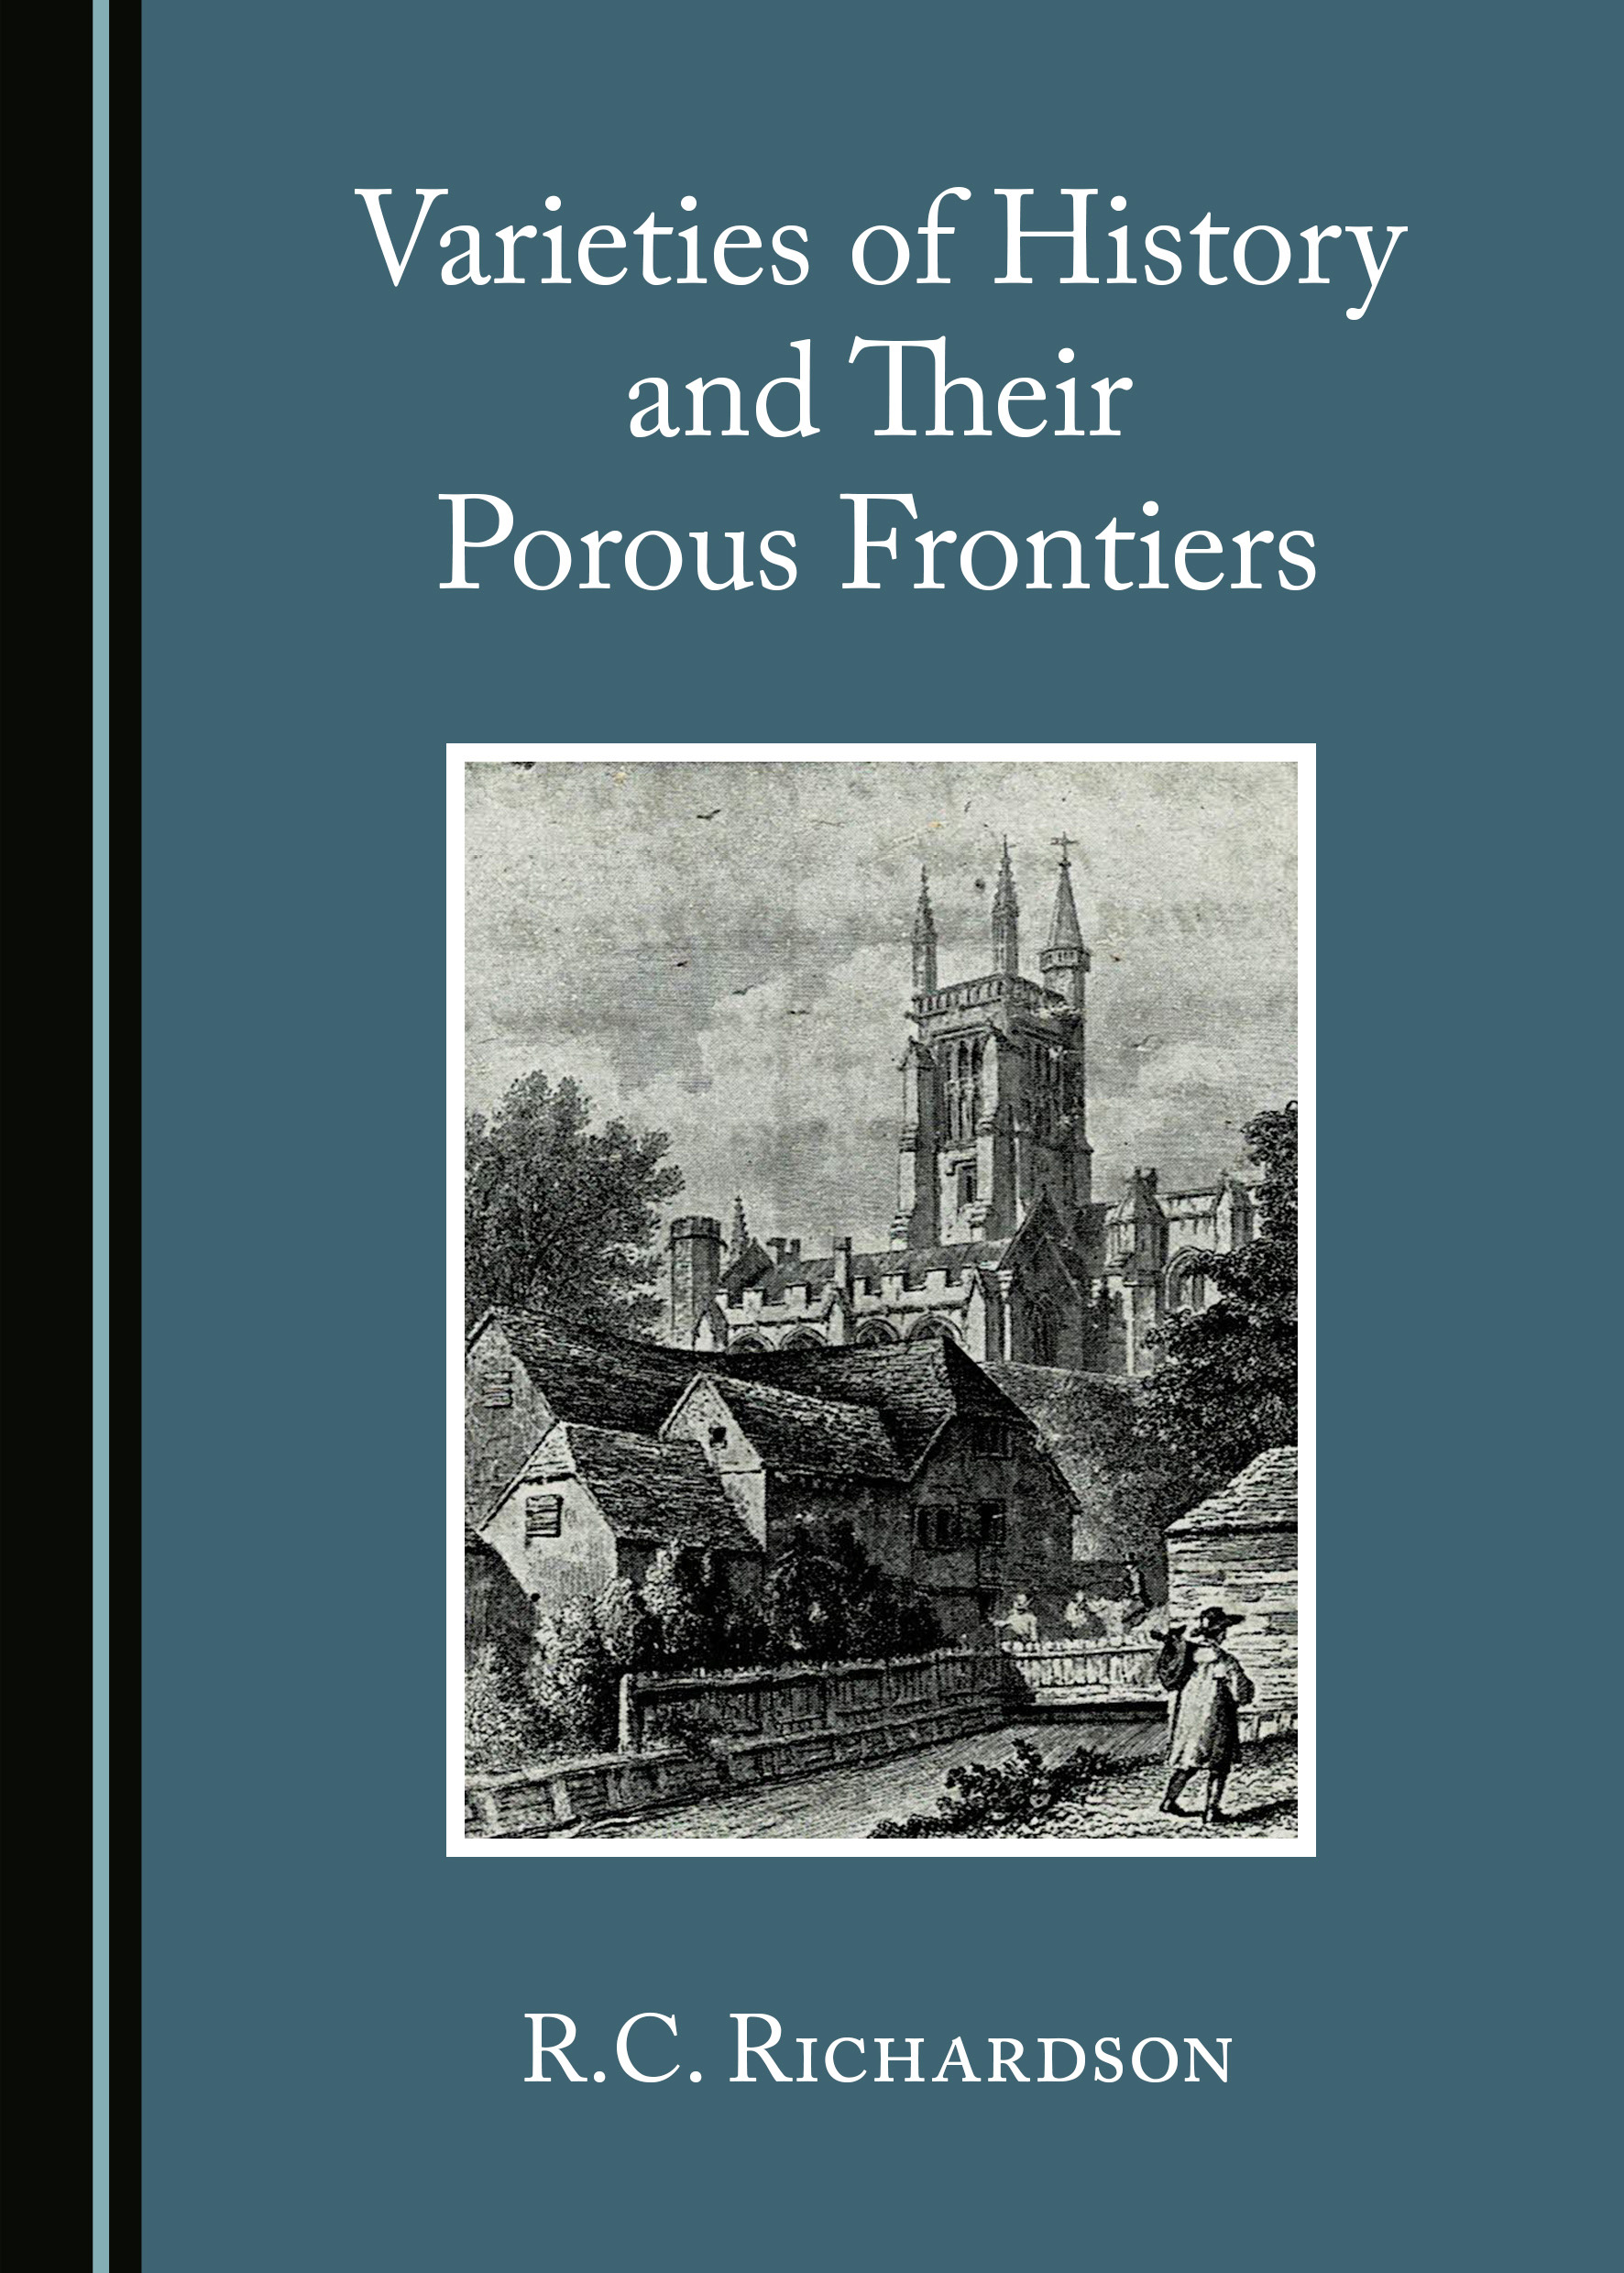 Varieties of History and Their Porous Frontiers